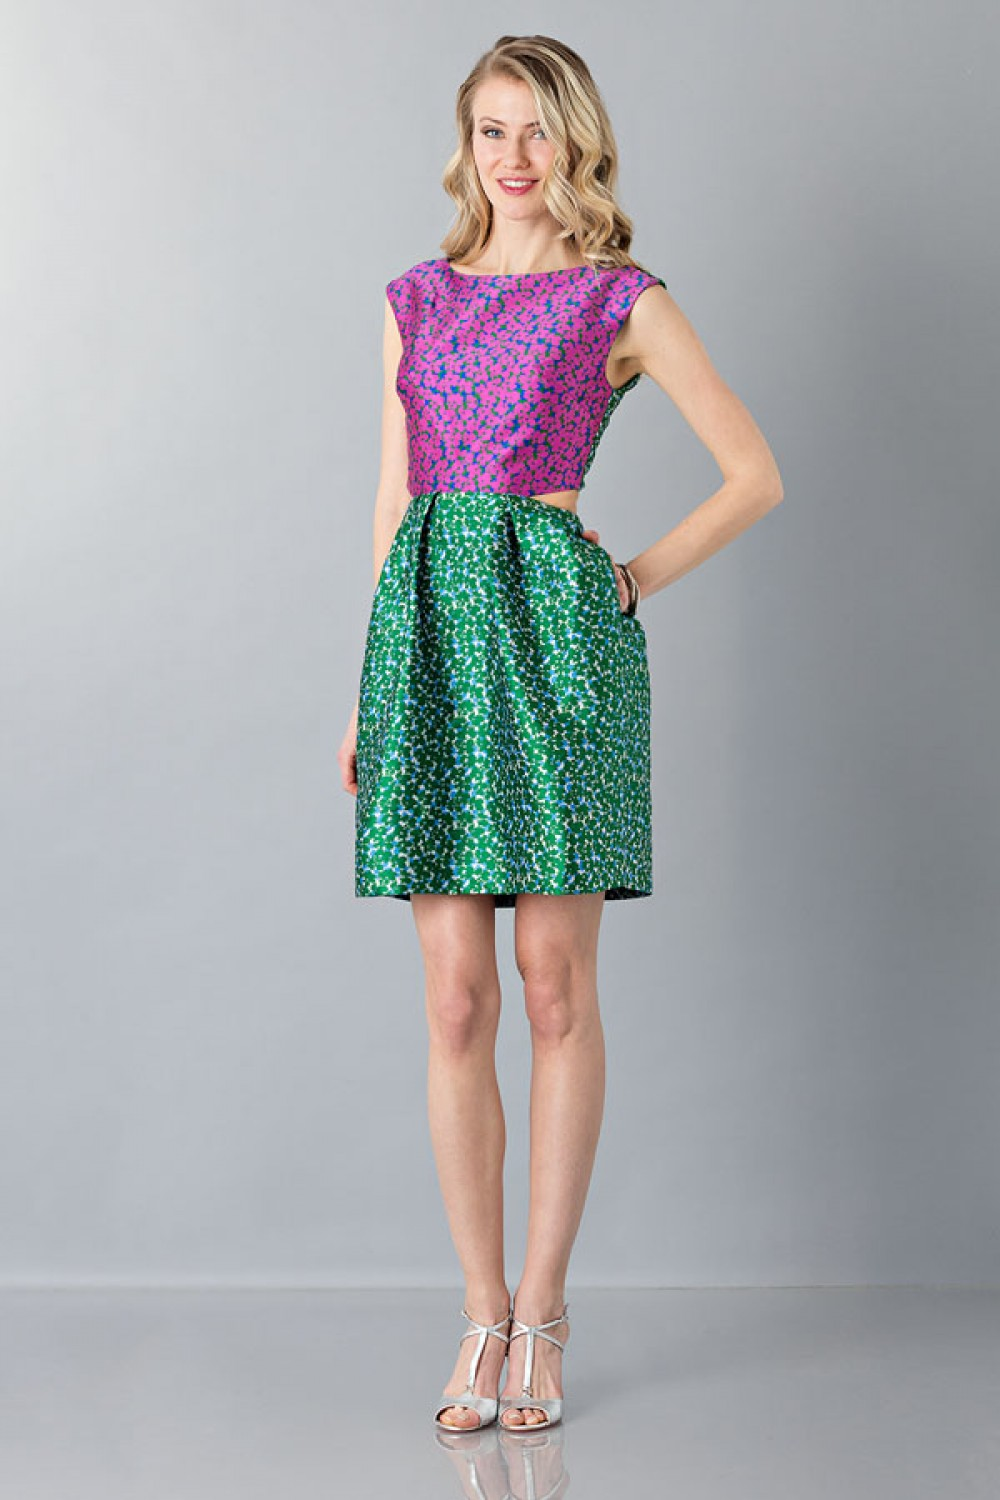 Floreal patterned dress